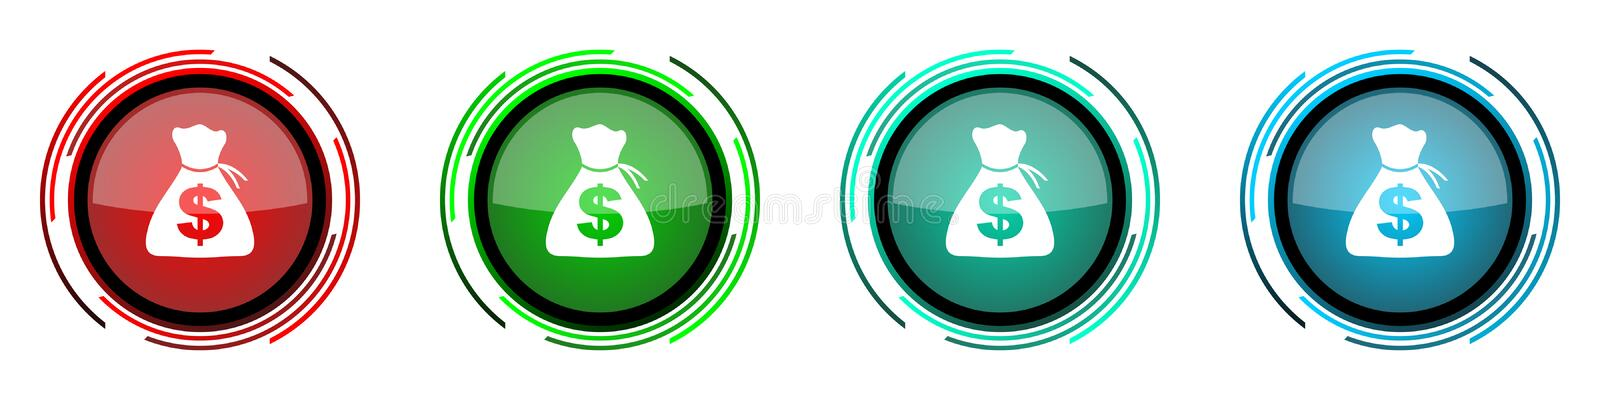 Money round glossy vector icons, set of buttons for webdesign, internet and mobile phone applications in four colors options. Isolated on white vector illustration